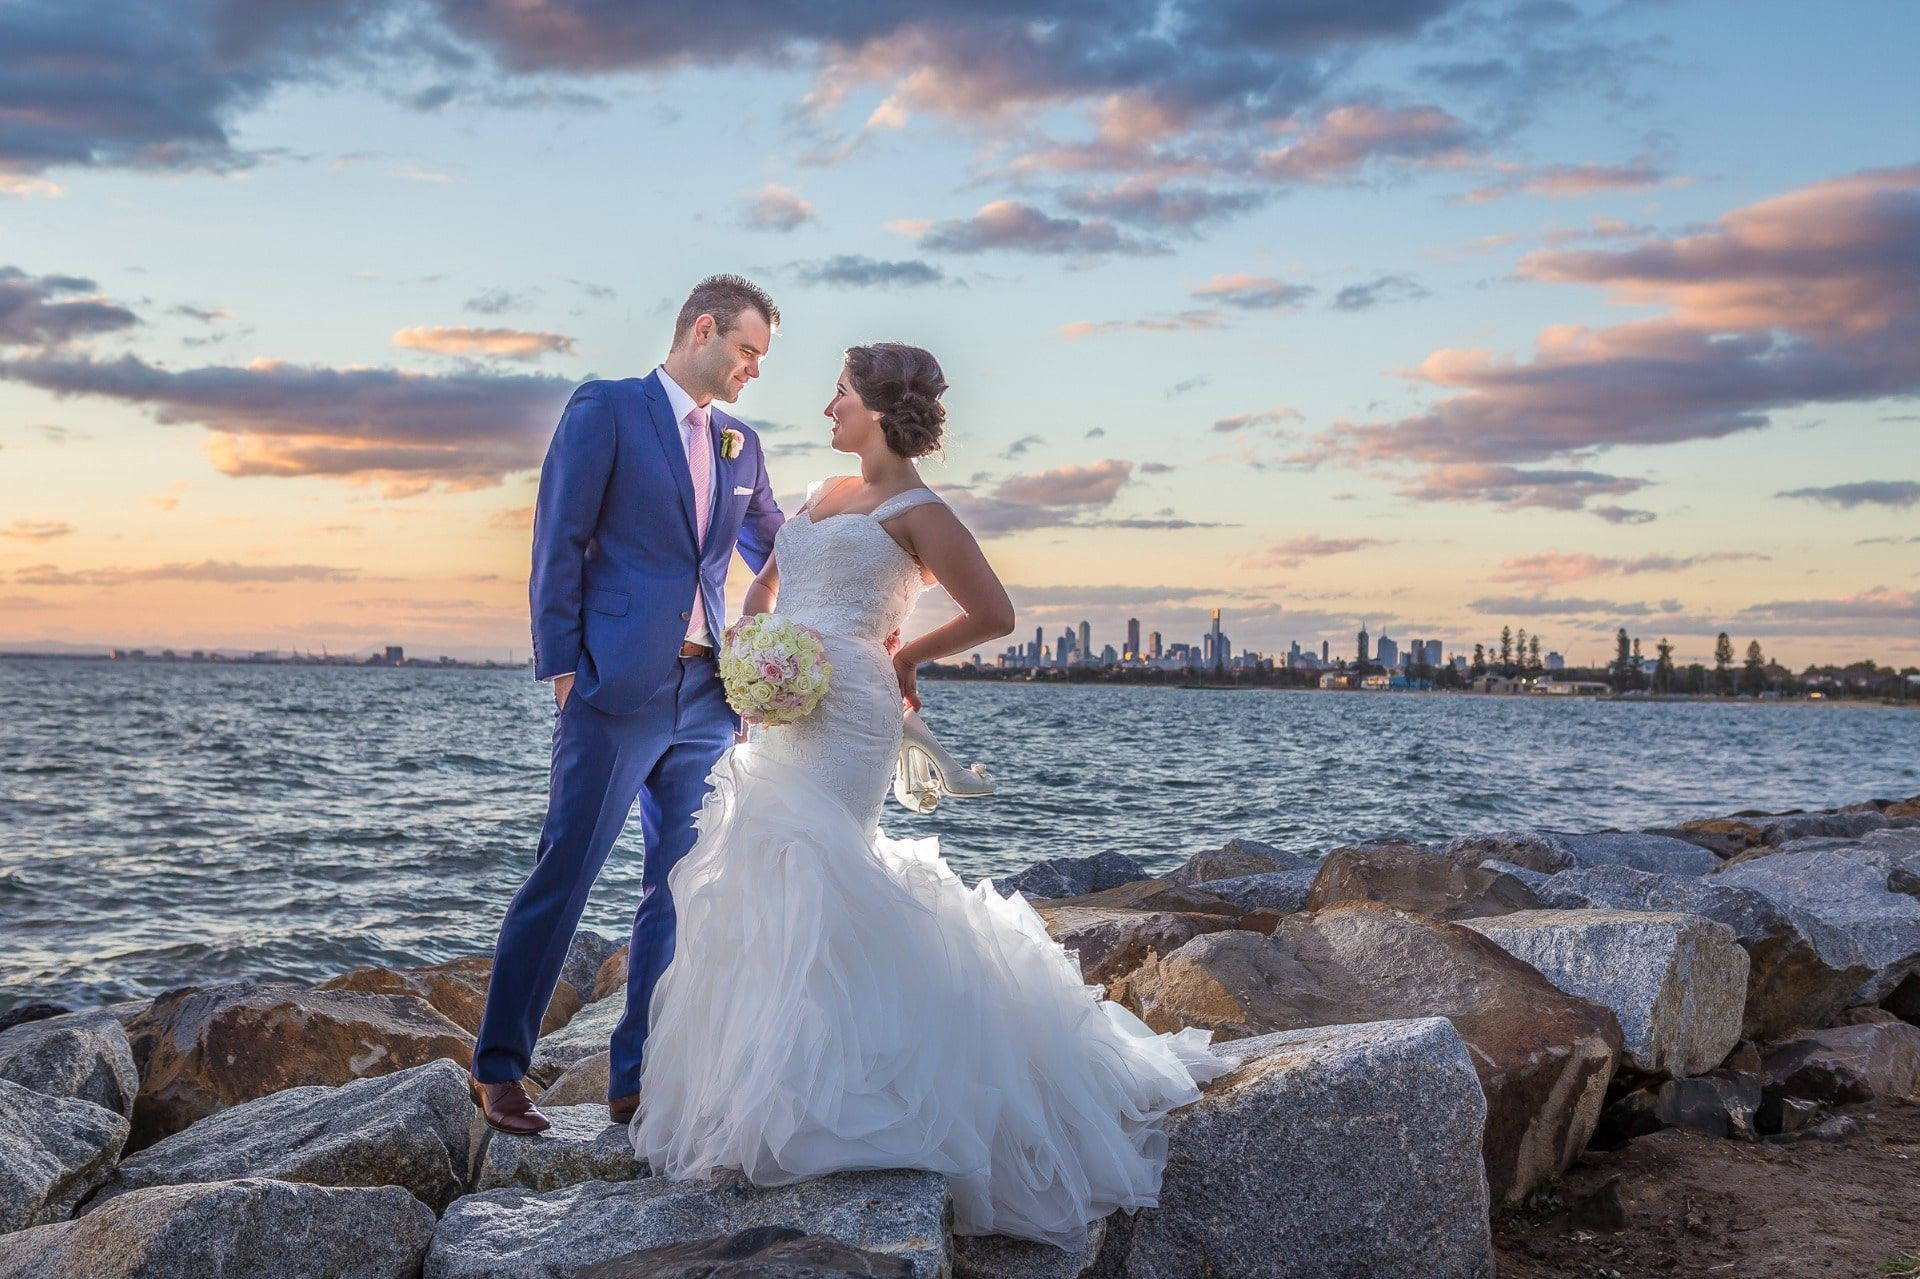 Wedding Photography Melbourne Tips For New Photographers